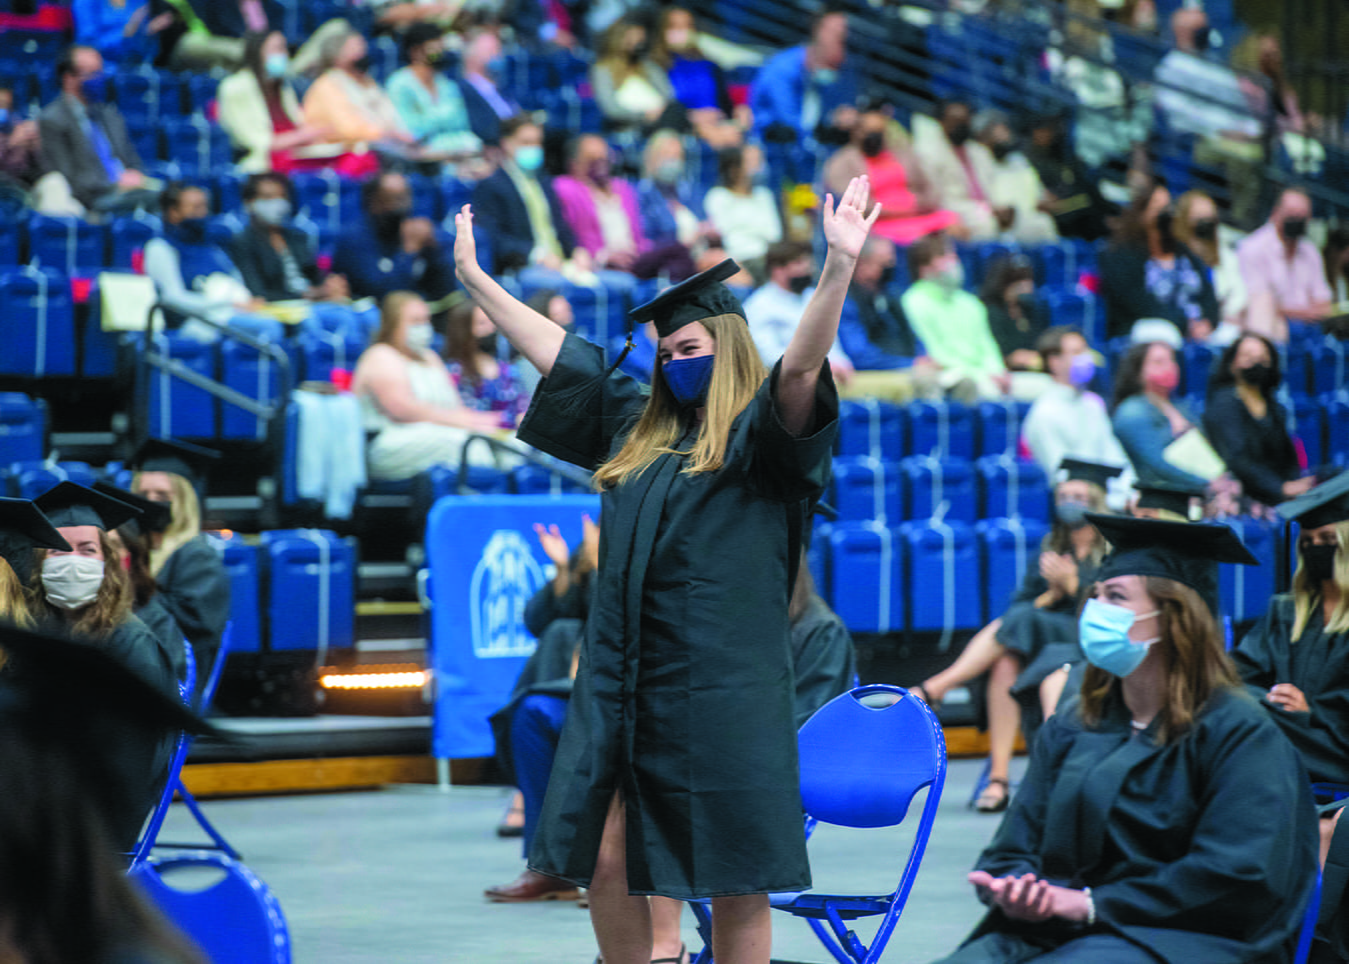 Graduation in Curb Event Center at Belmont University in Nashville, Tennessee, April 23, 2021.